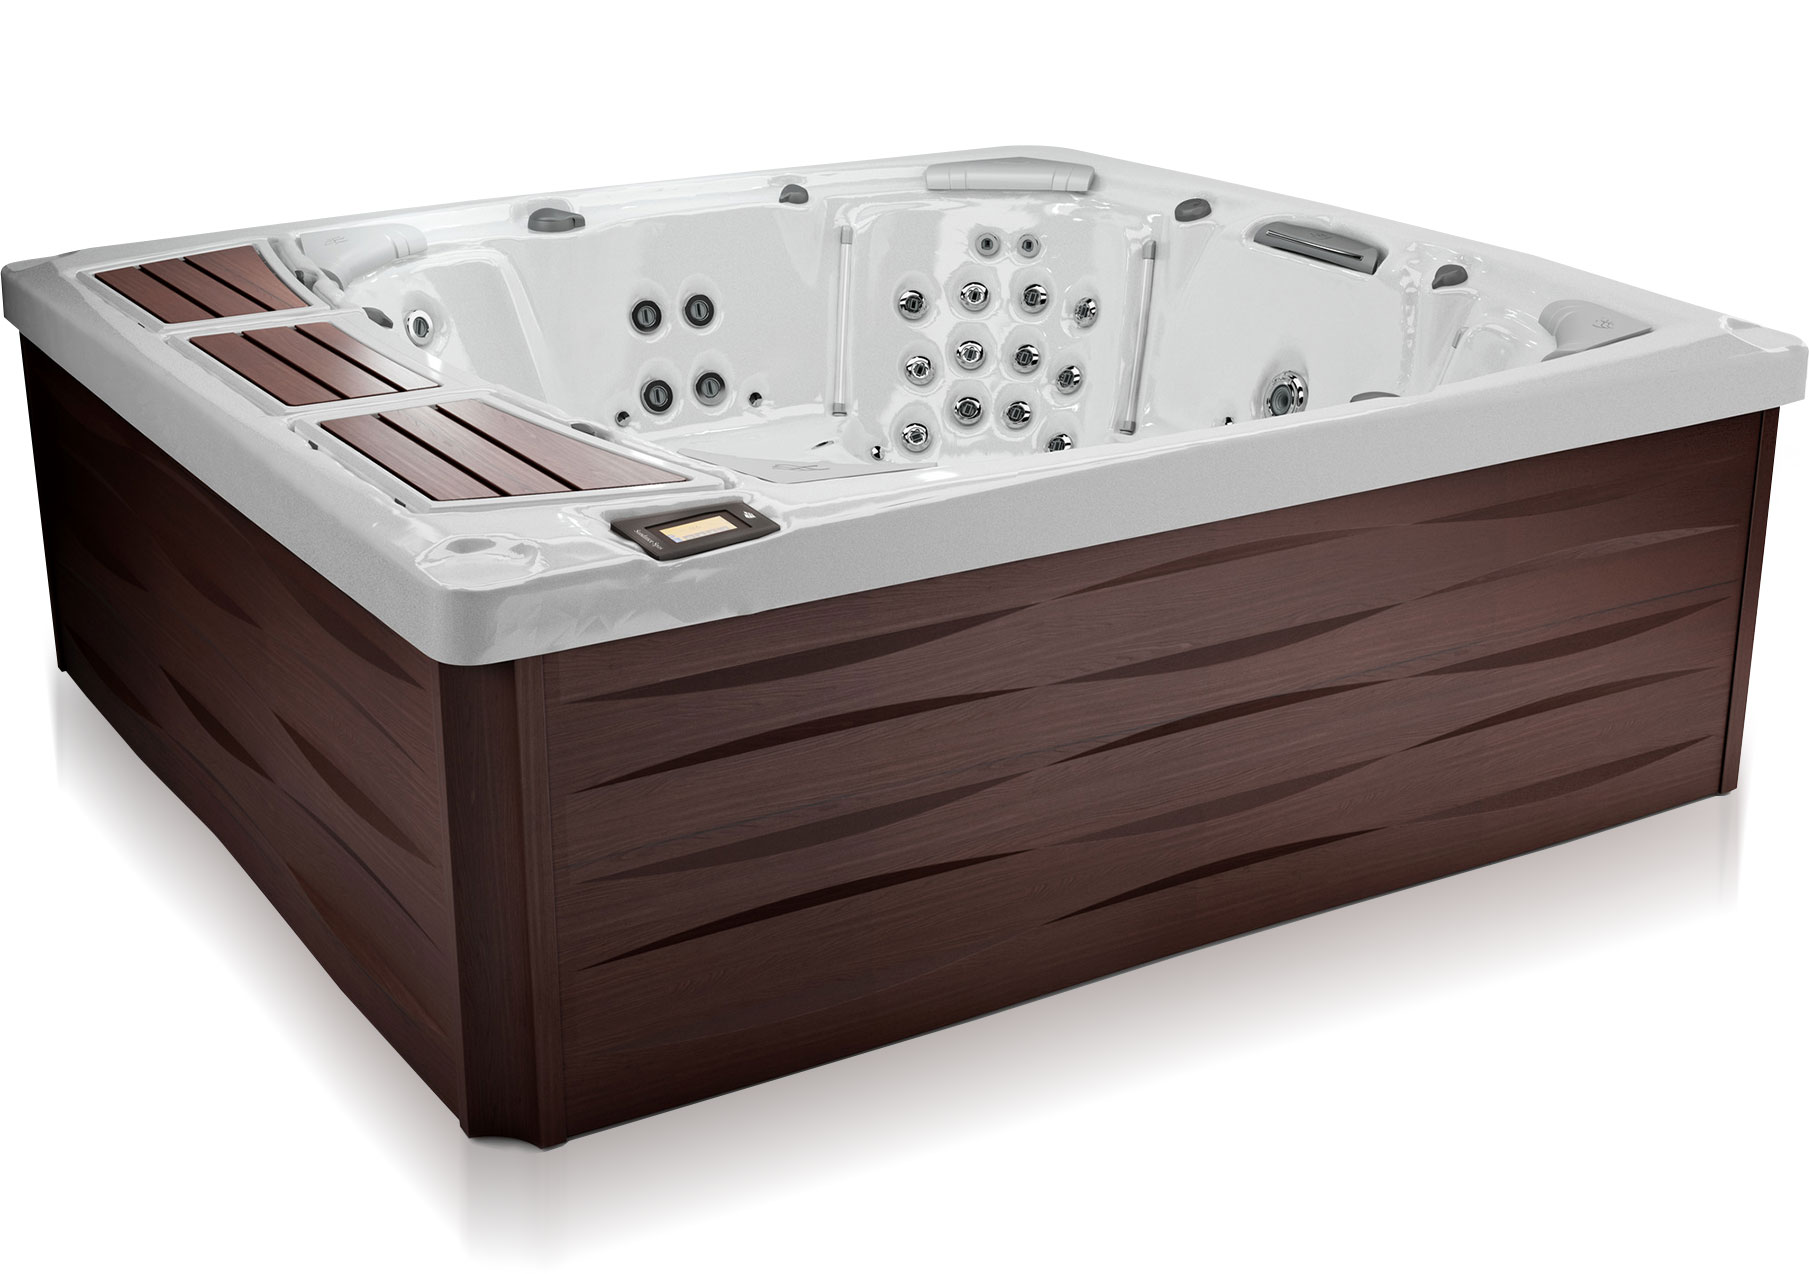 Sundance Spas 980 series Kingston hot tub.